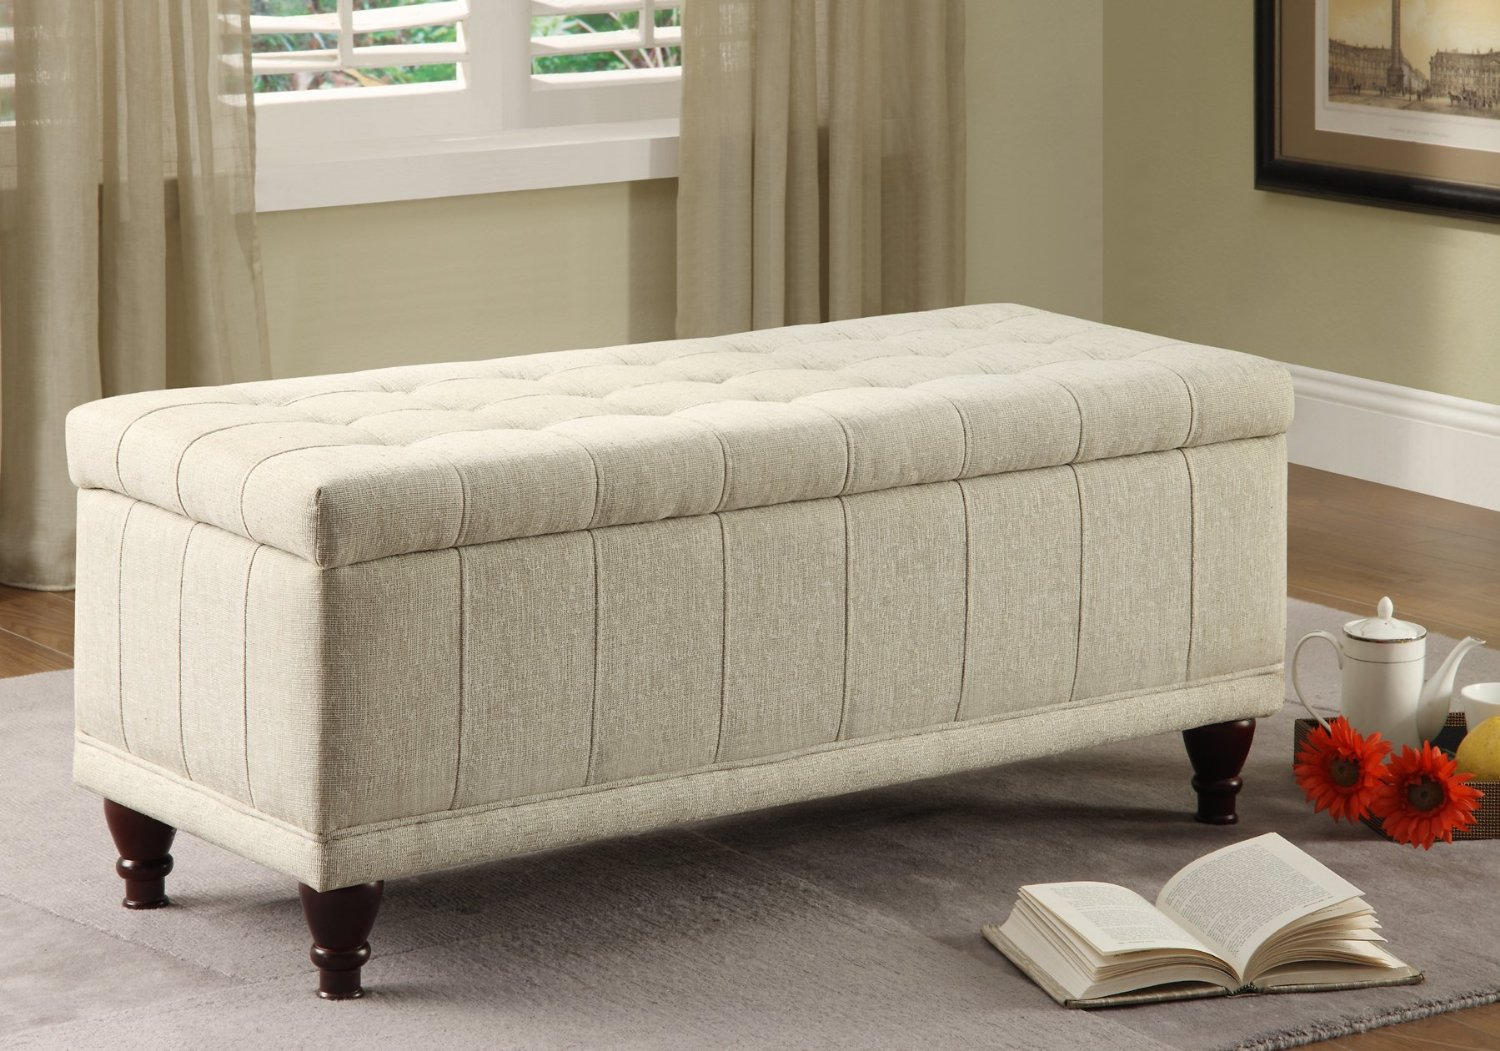 Bedroom Storage Bench Seat